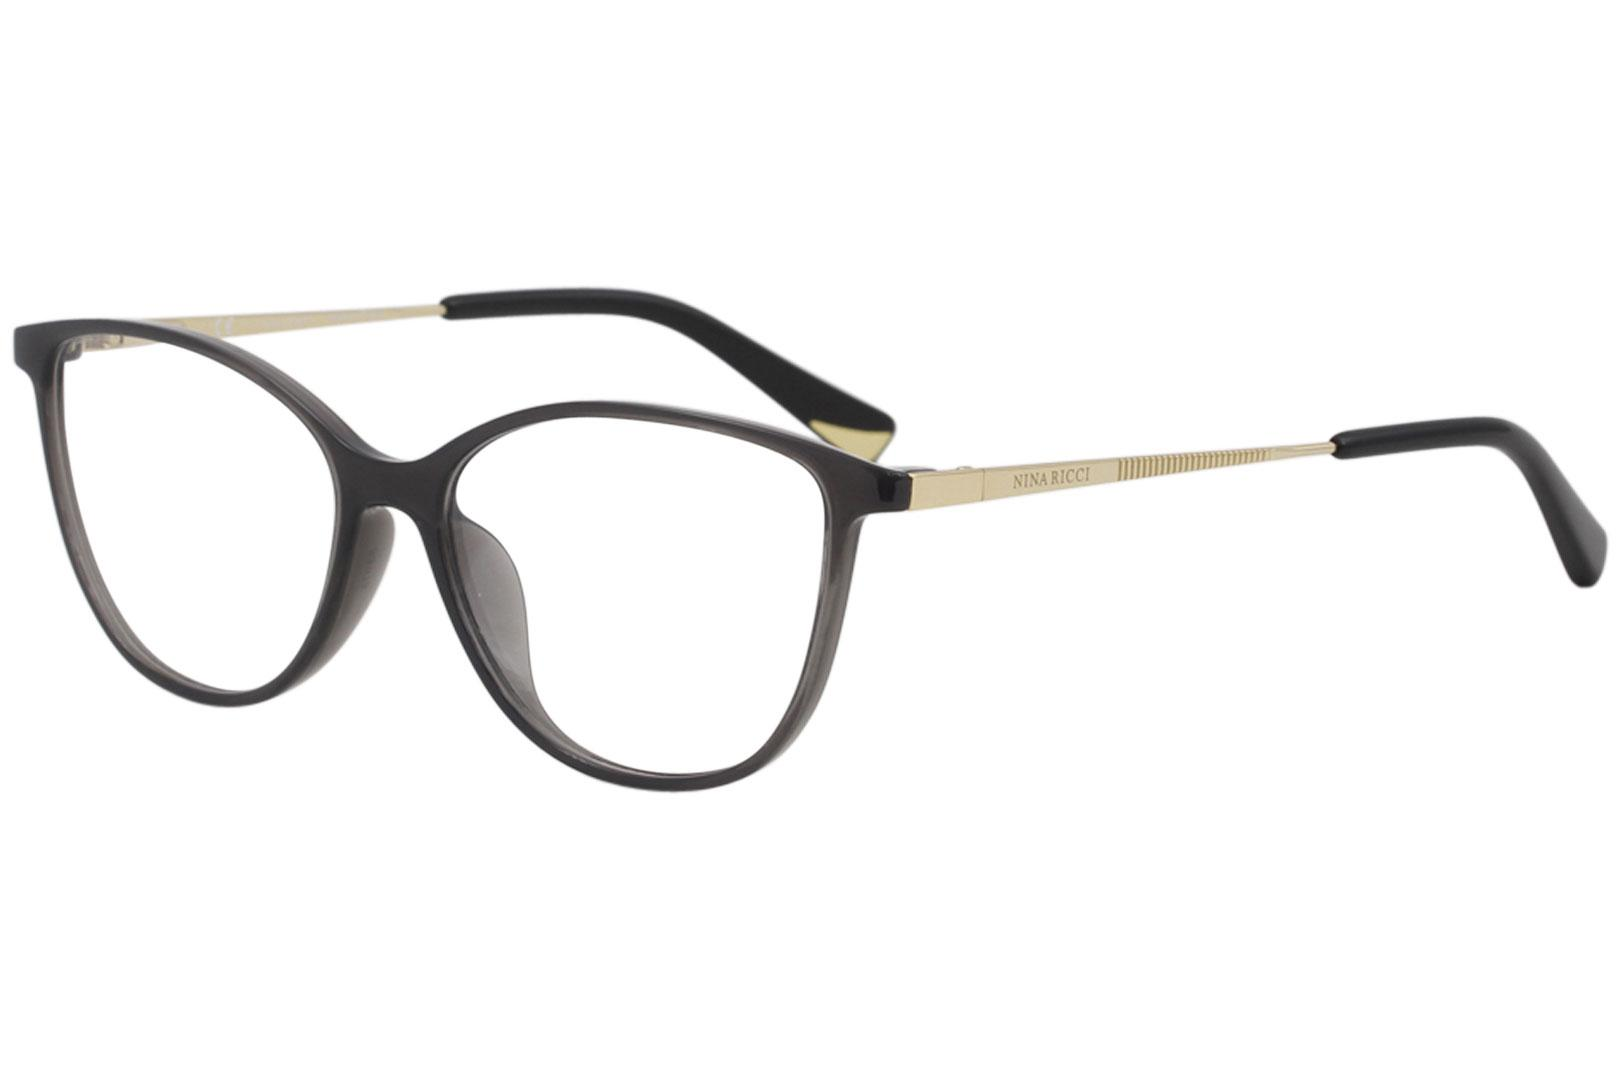 Image of Nina Ricci Eyeglasses VNR034 VNR/034 0705 Clear Dark Grey Optical Frame 53mm - Semi Clear Dark Grey   0705 - Lens 53 Bridge 15 Temple 130mm